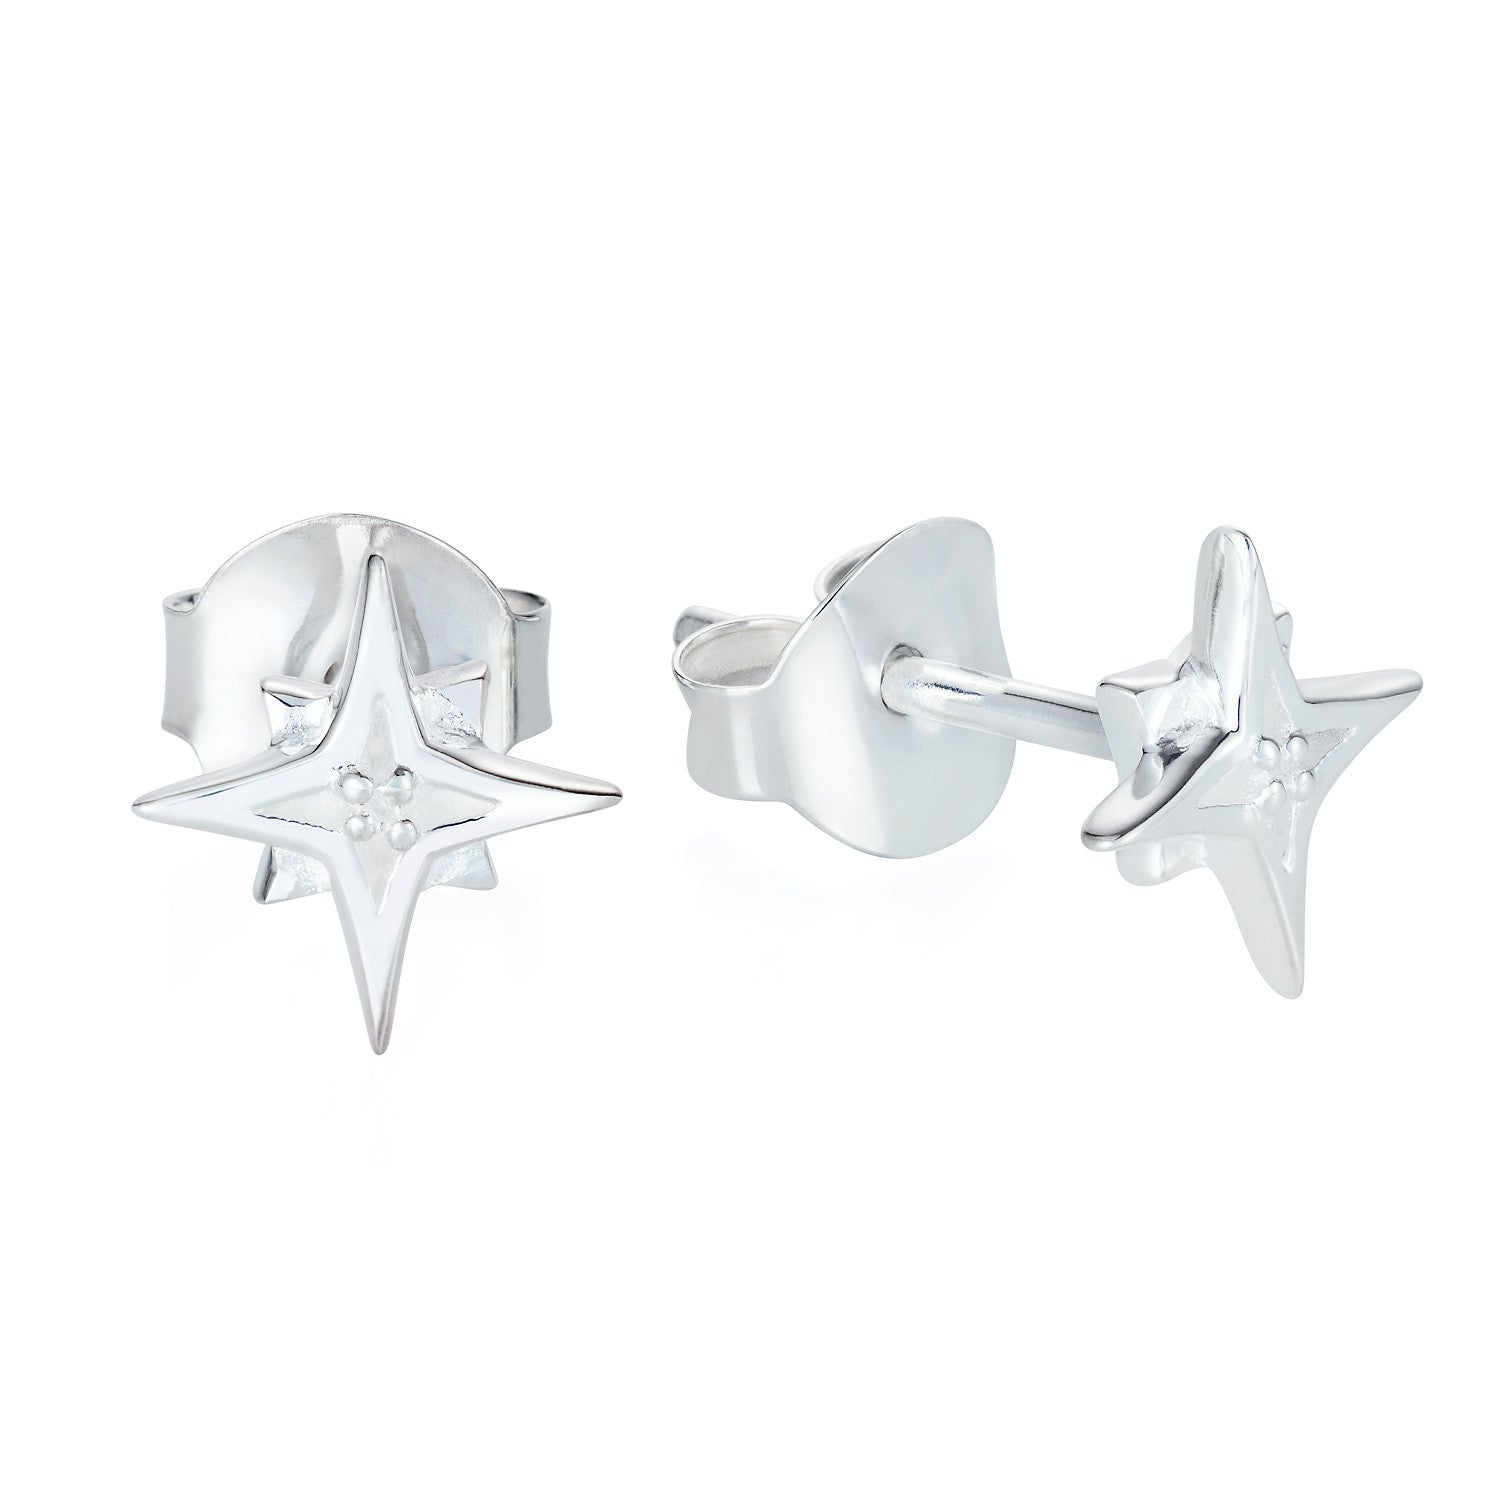 Compass Star Ear stud earrings